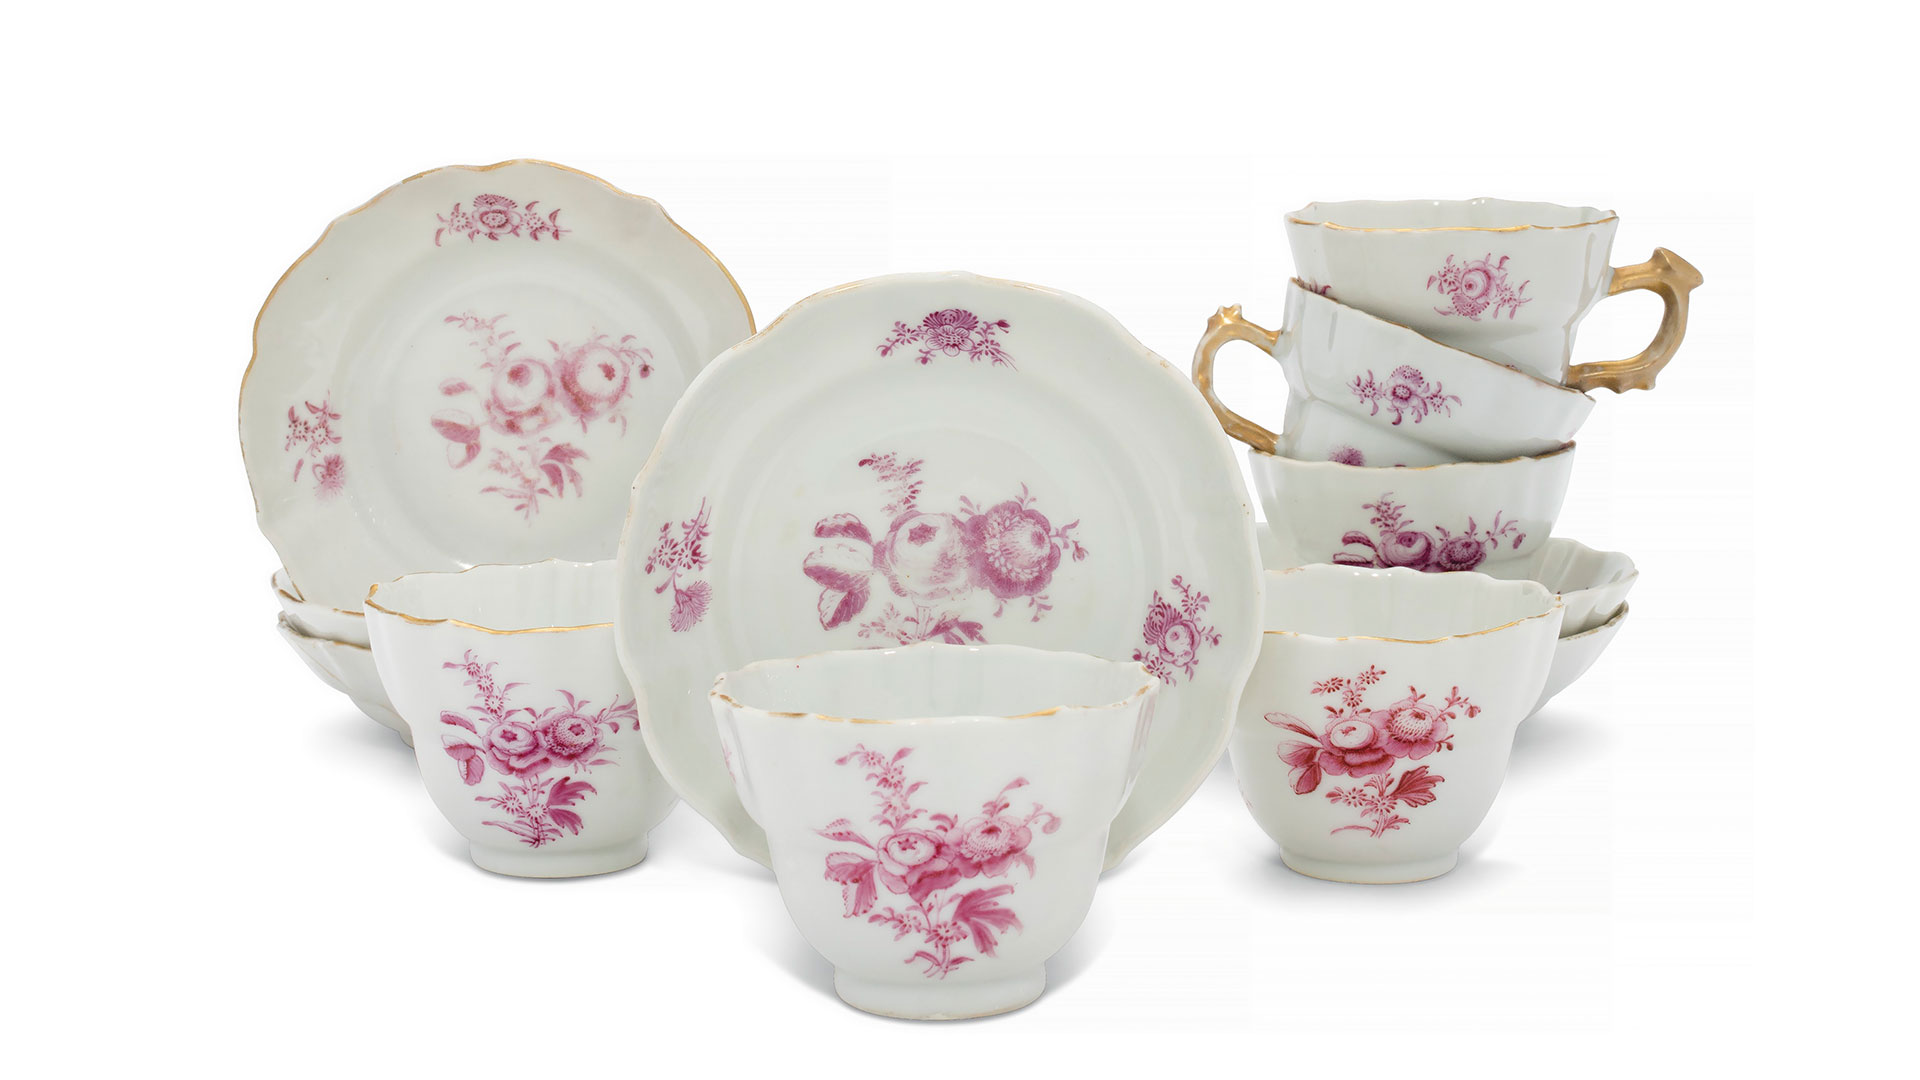 Six continental porcelain cups and saucers, circa 19th century